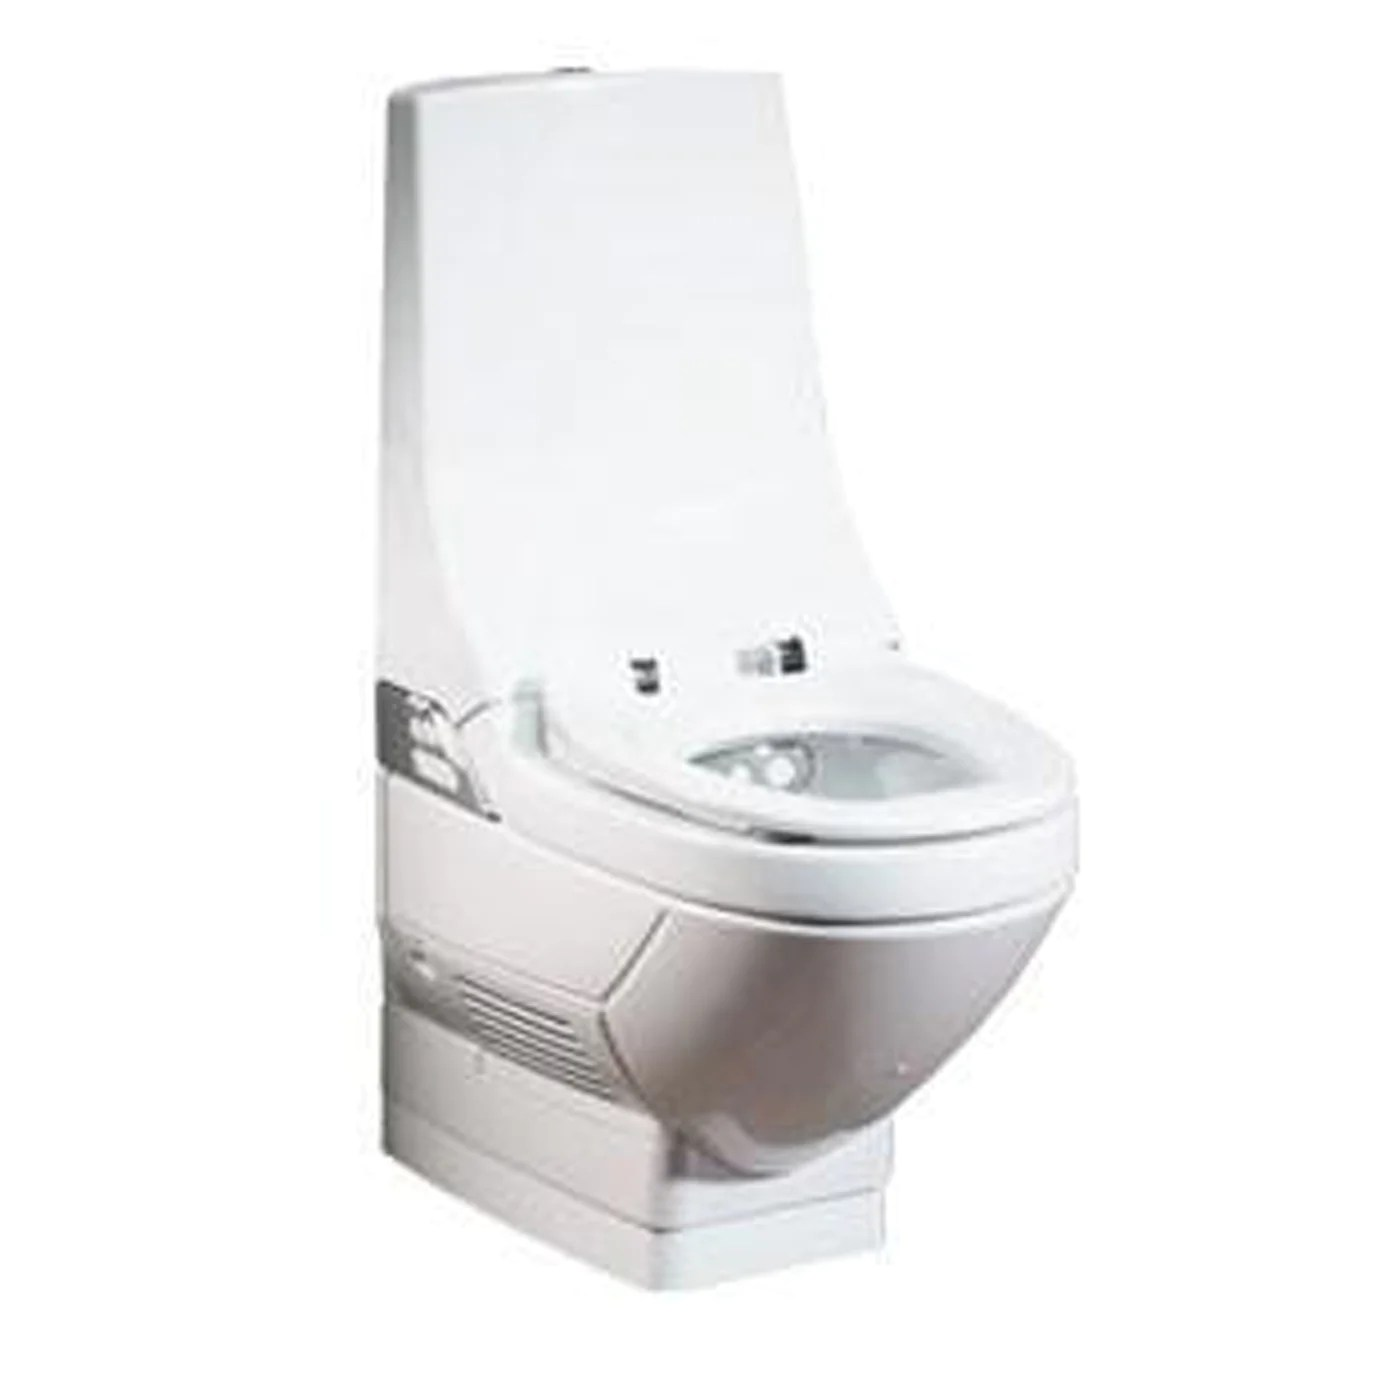 Aquaclean 8000plus Aquaclean 8000plus Care Shower Toilet Kingkraft